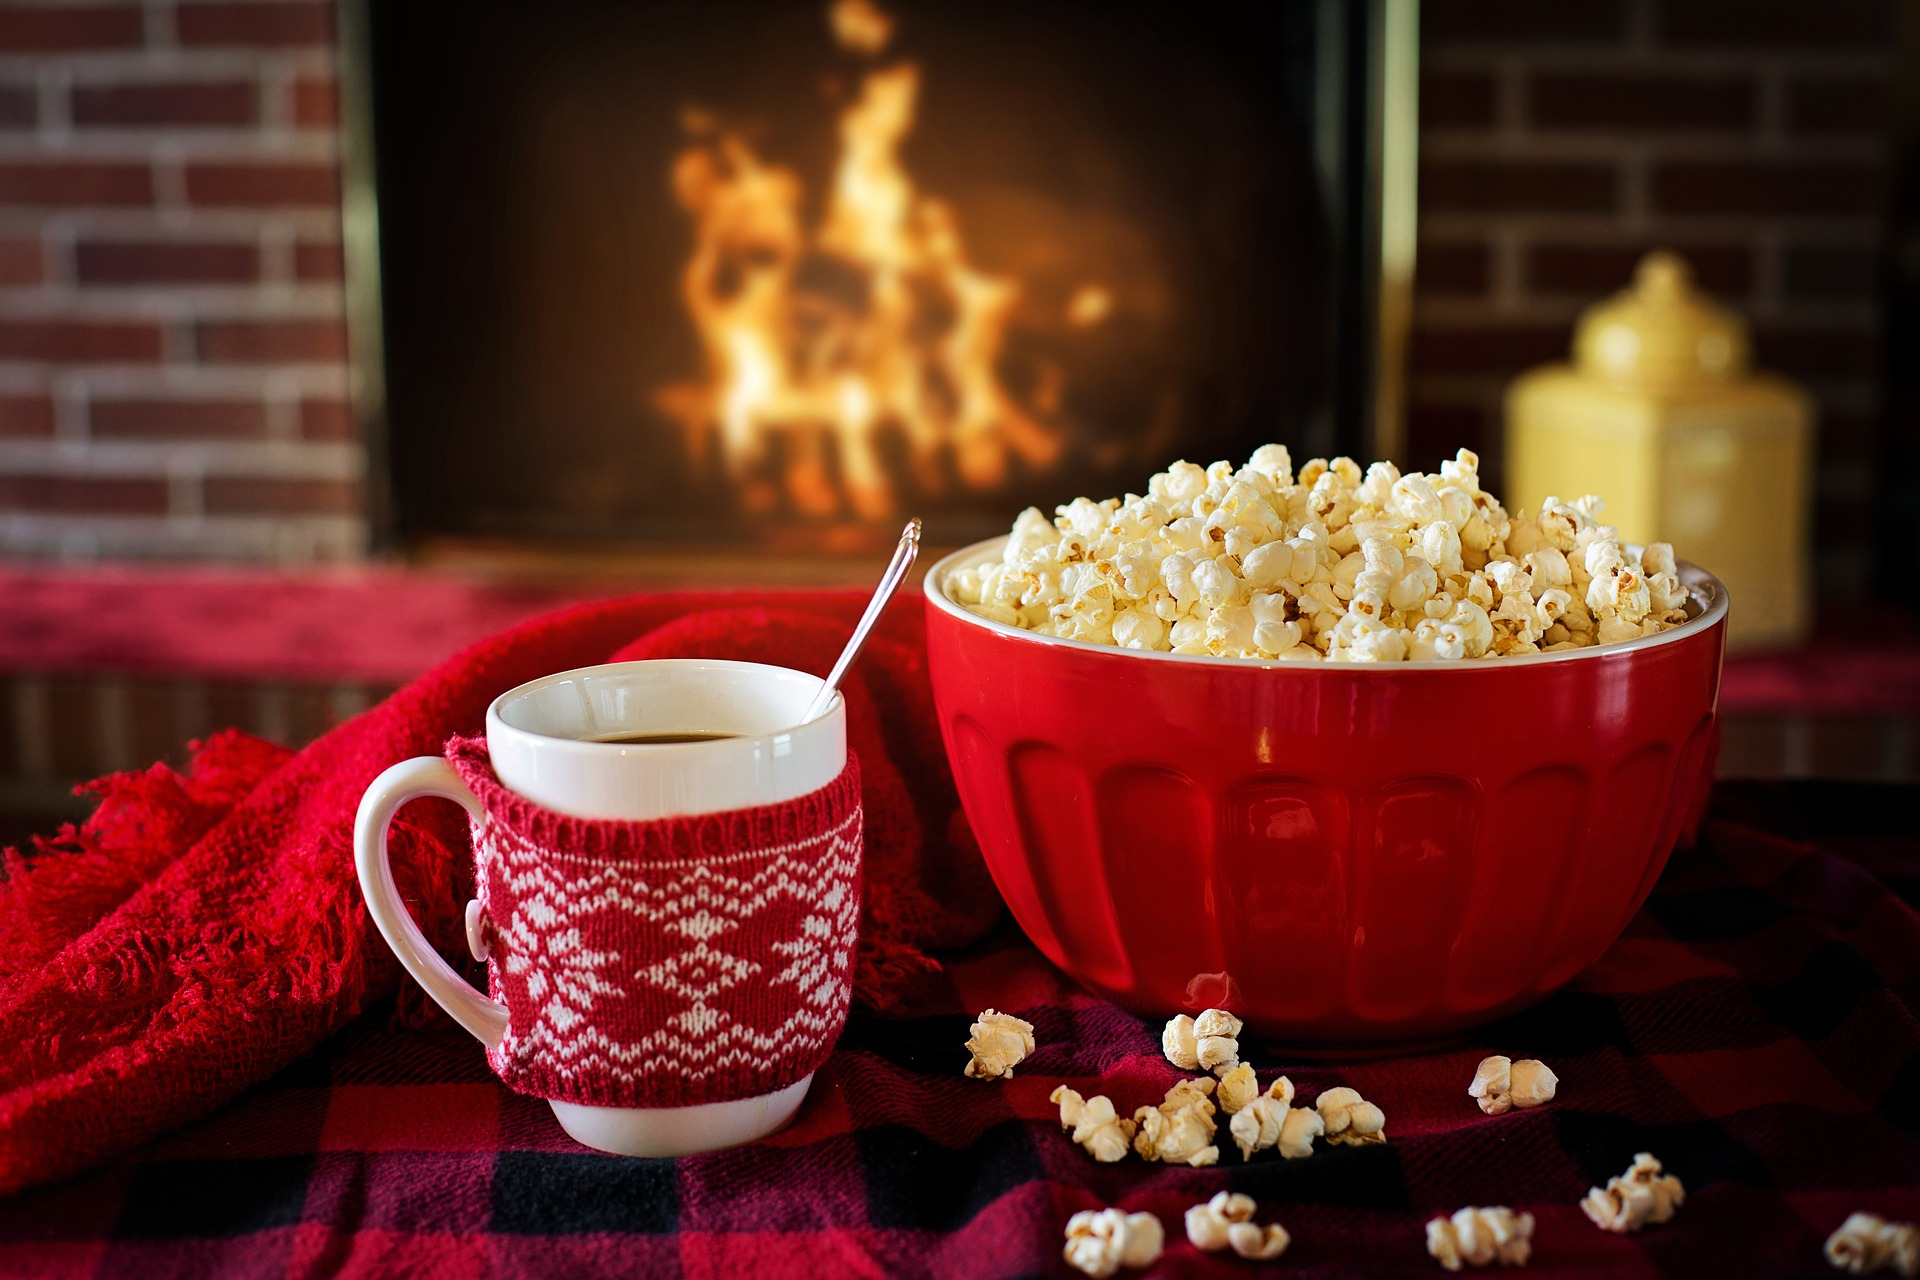 A mug of hot chocolate with a bowl of popcorn by the fireplace